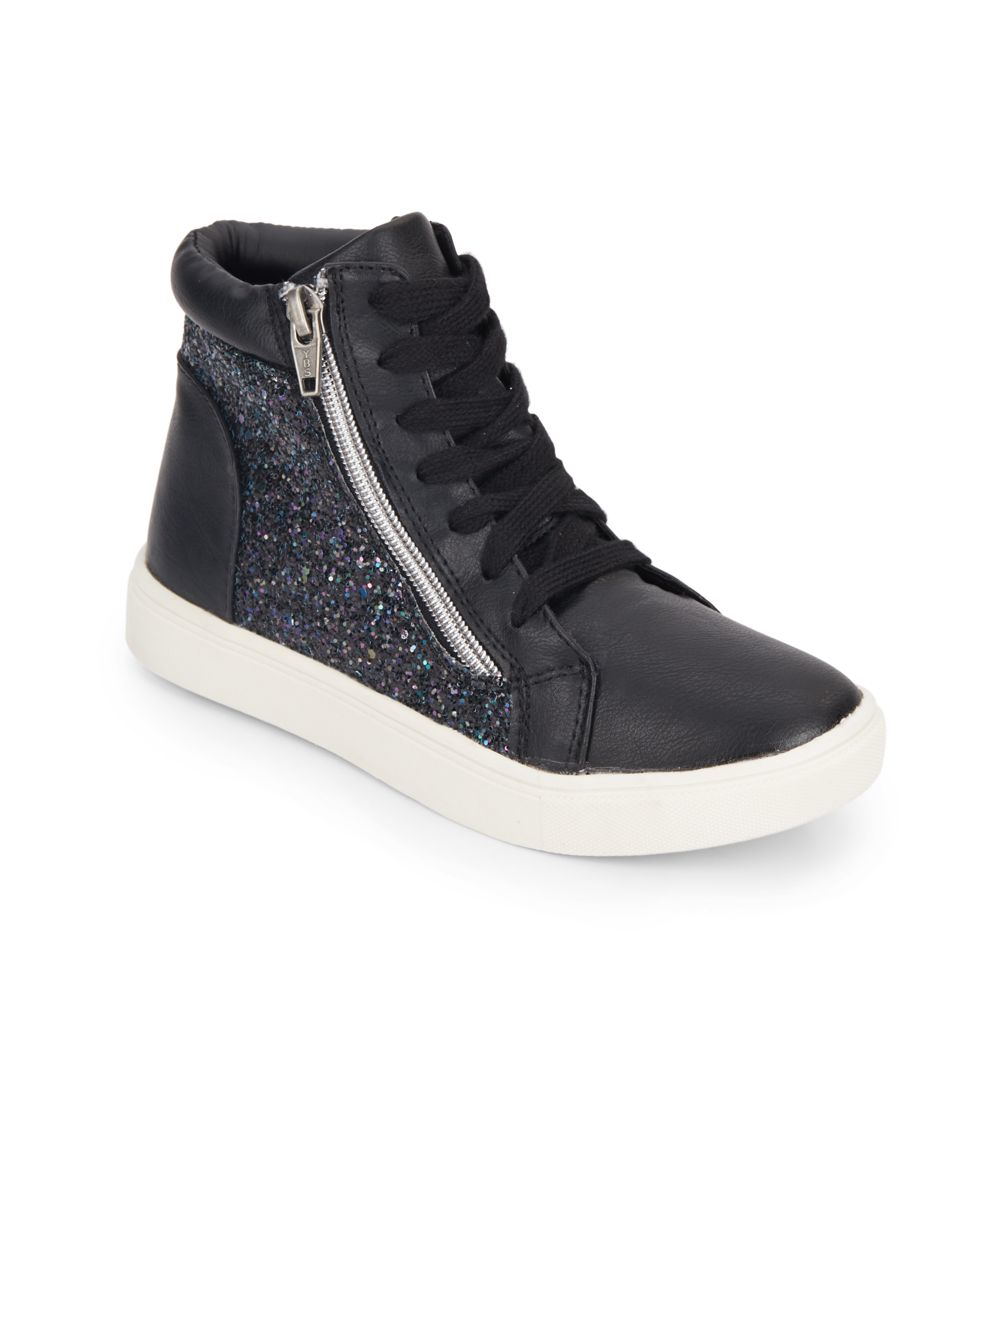 e7ba4a560bc Lyst - Steve Madden Girl s Glitter Faux Leather High Top Sneakers in ...